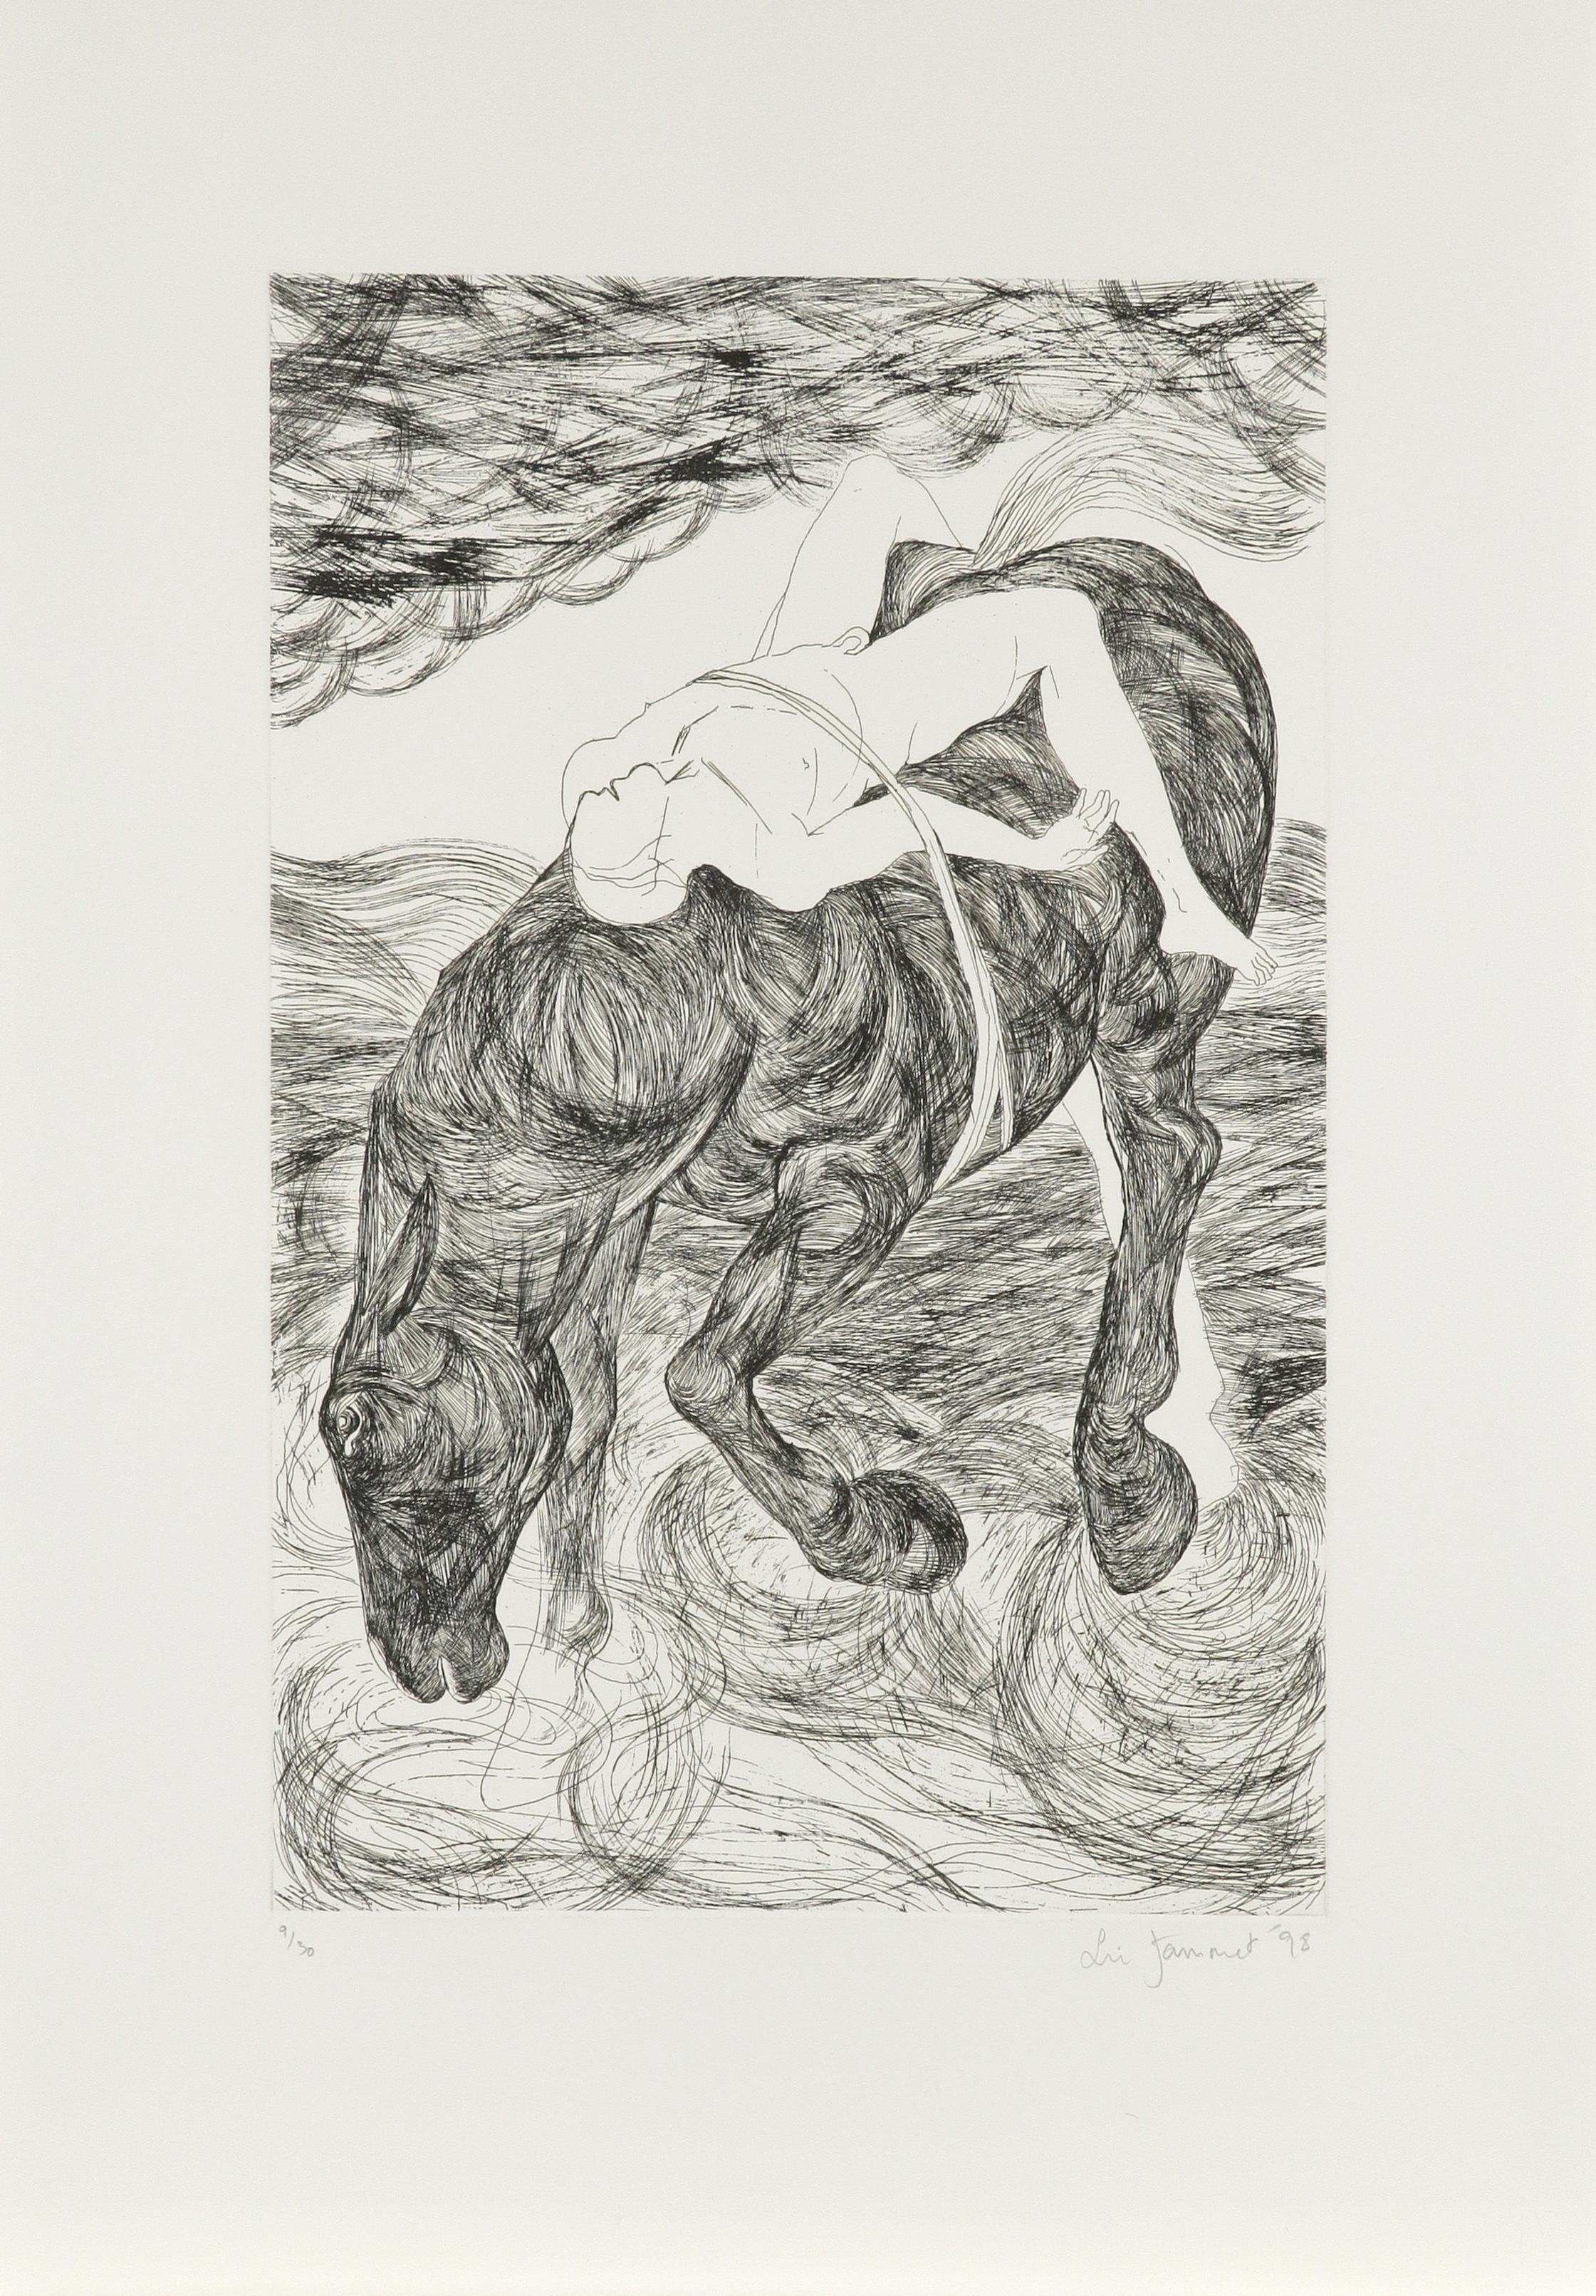 ‡Lin Jammet (1958-2017) Mazeppa Signed, dated and numbered 9/30 Lin Jammet '98 (in pencil to